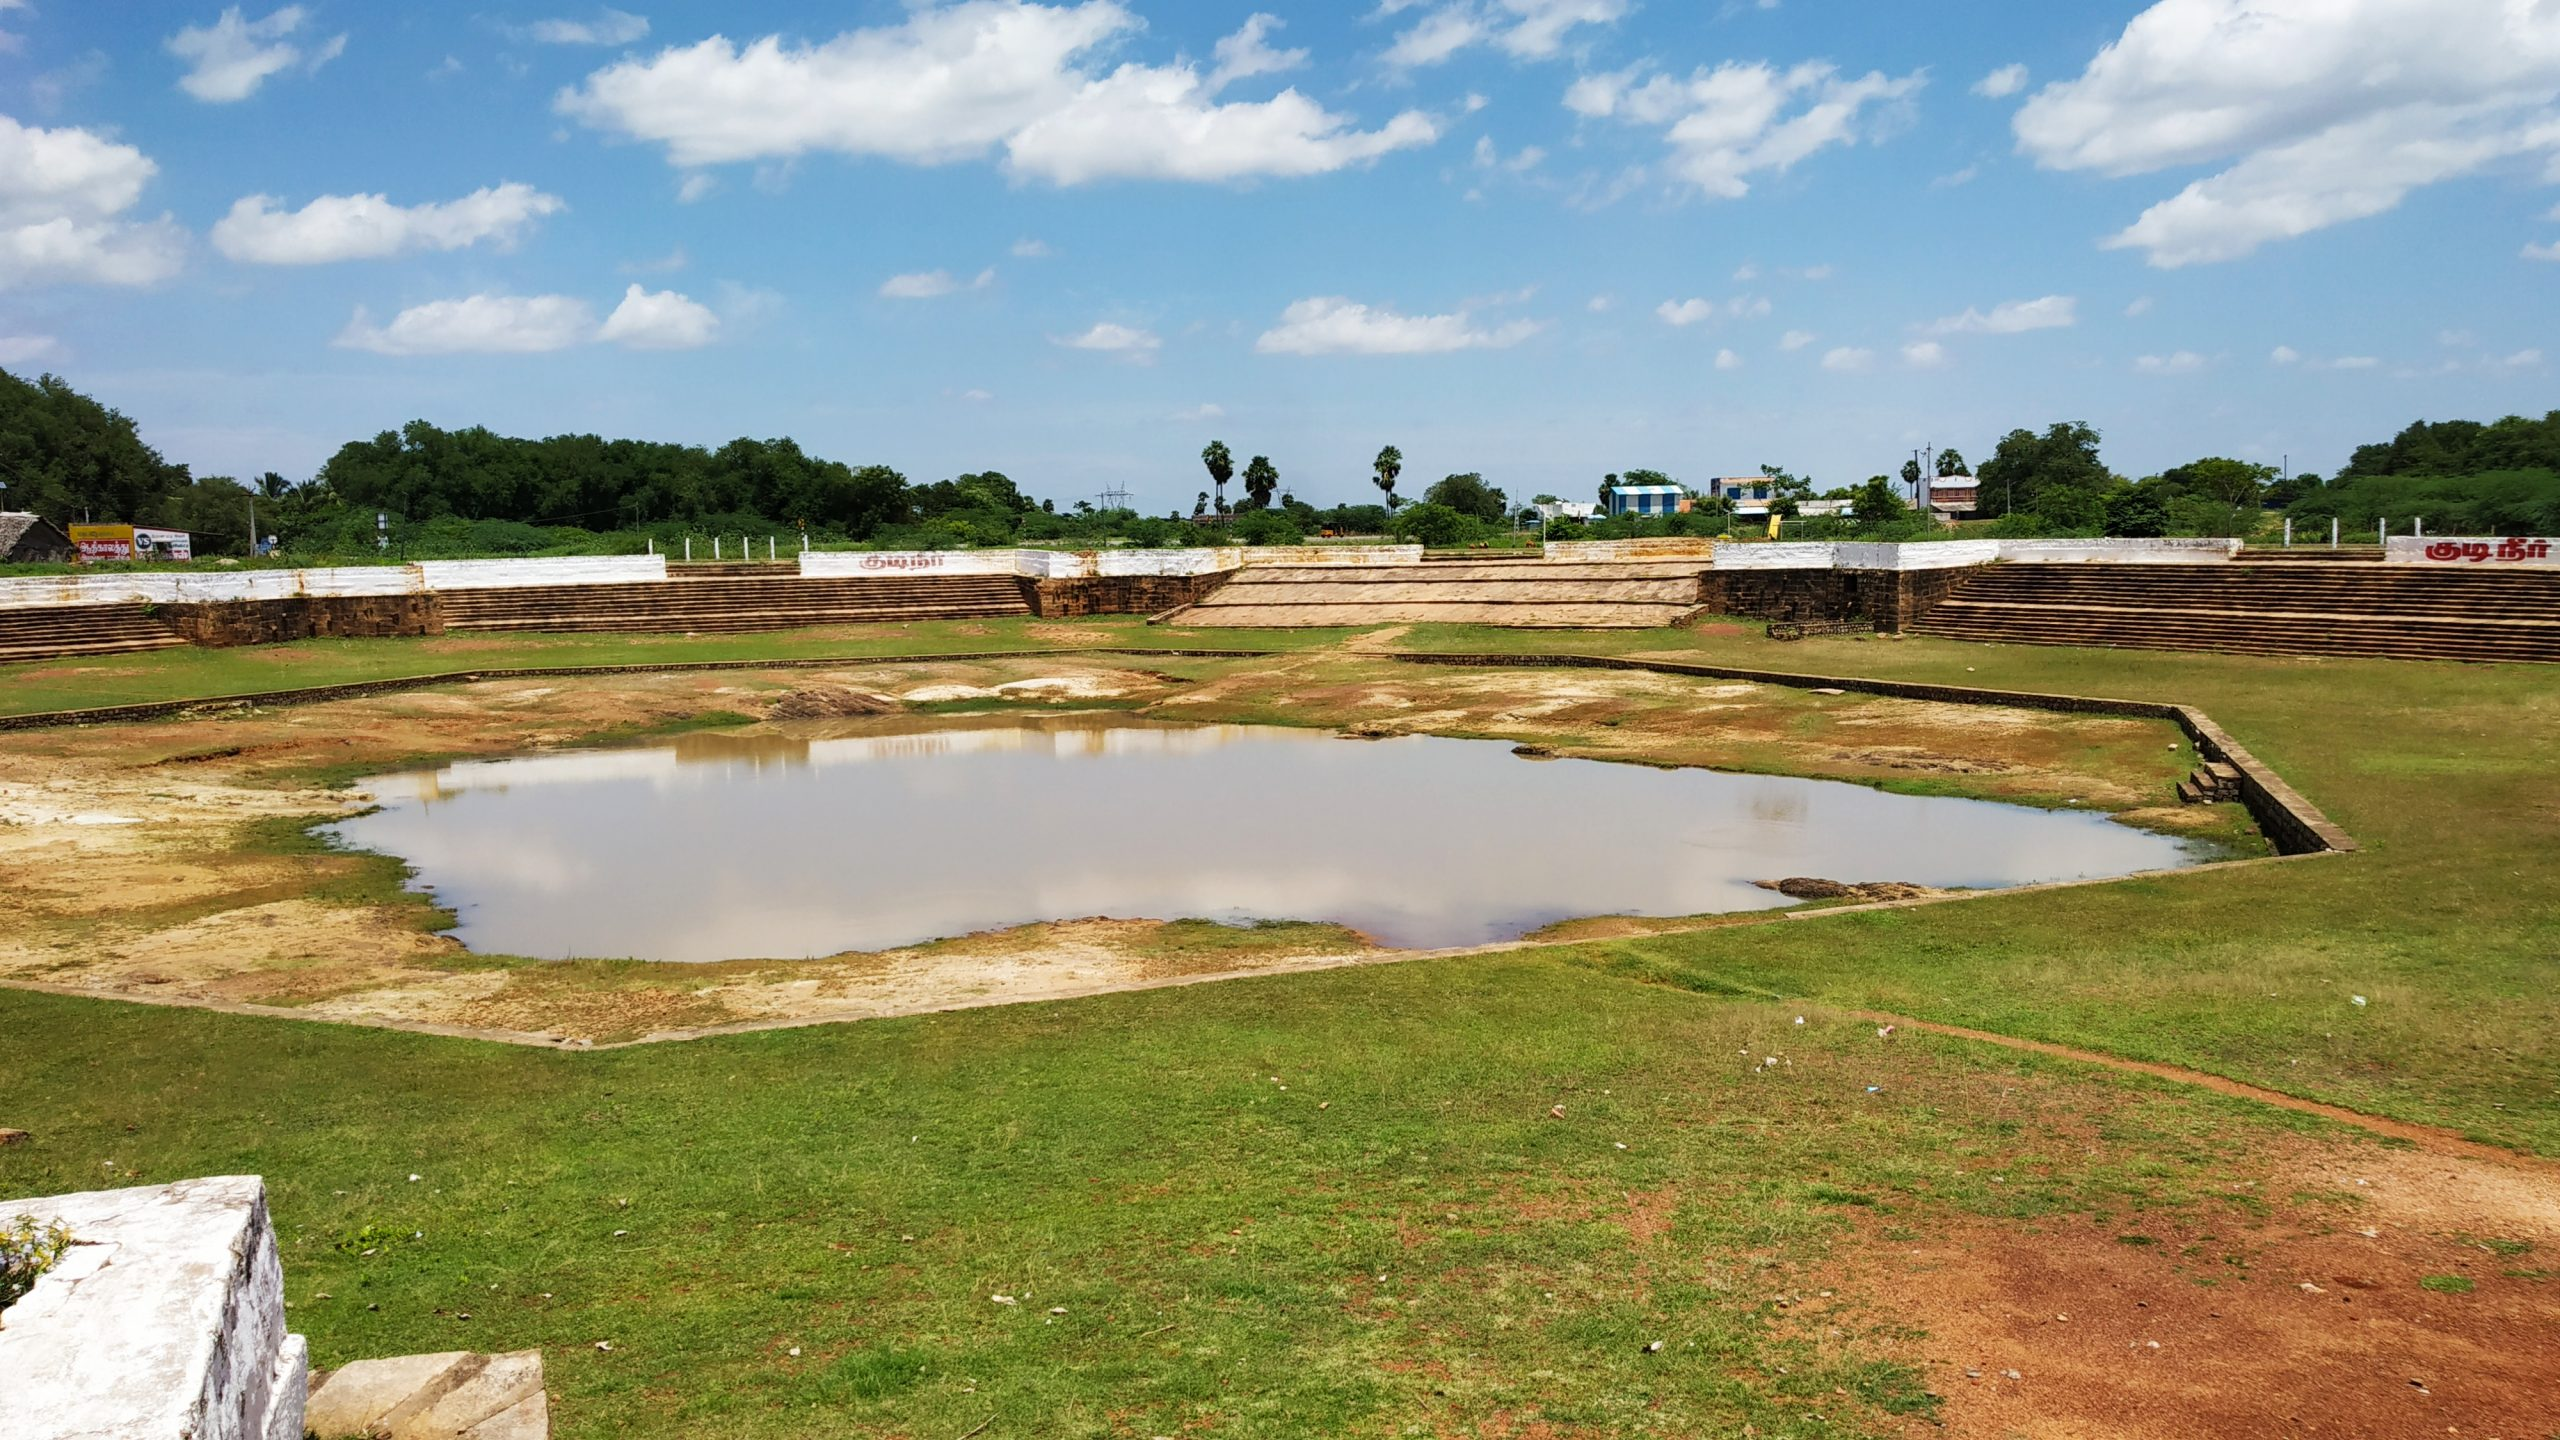 A water pool